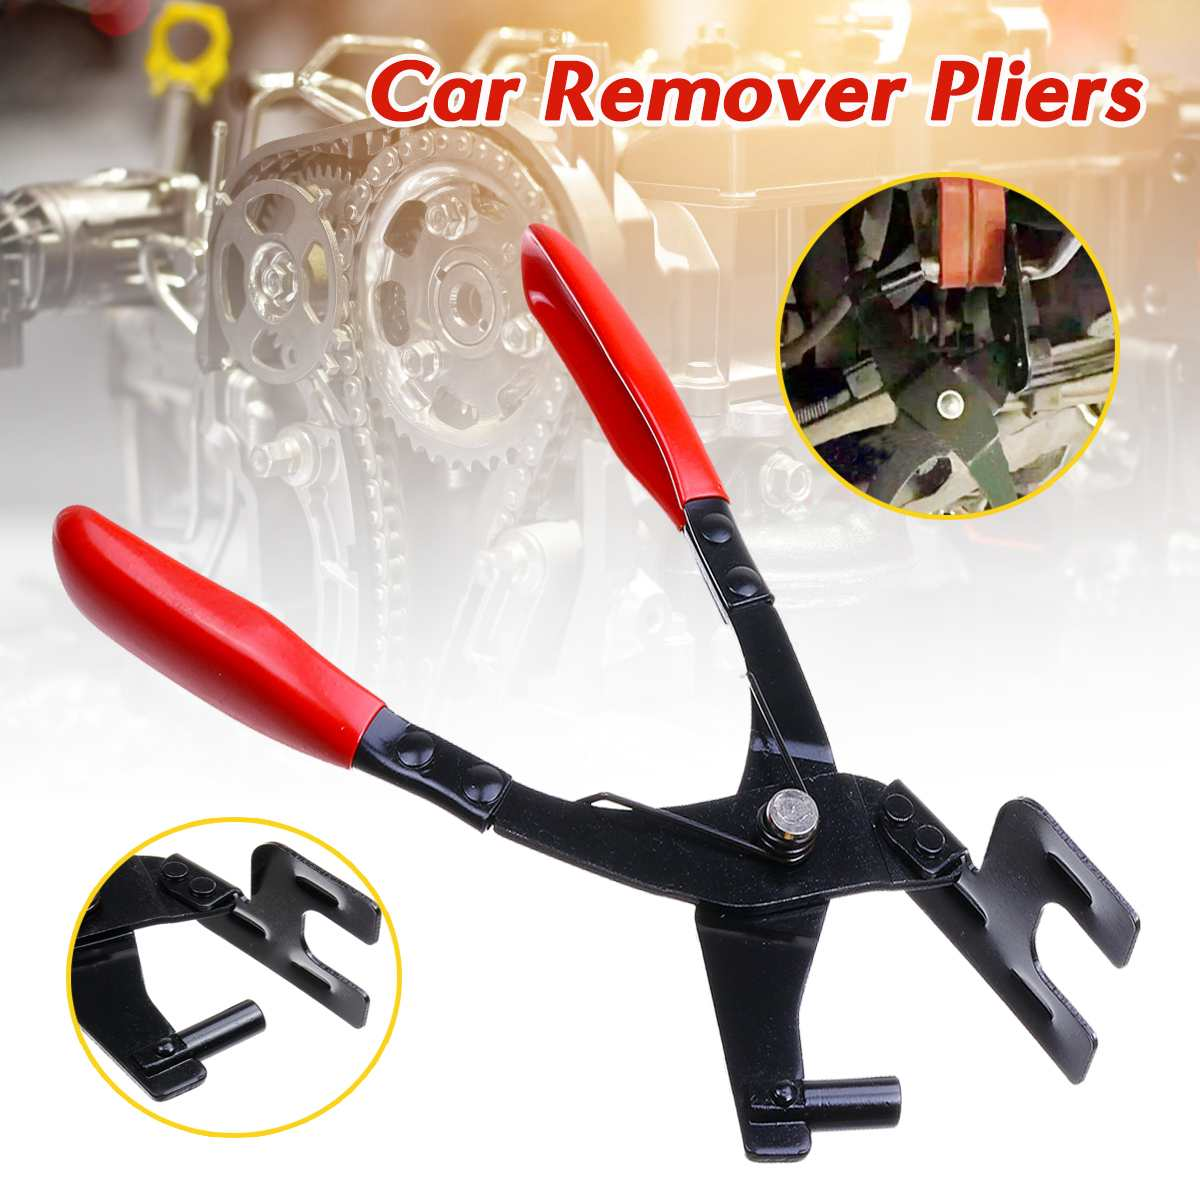 Car Exhaust Pipe Hanger Remover Pliers Removal Stretcher Repair Carbon Steel Exhaust Hanger Removal Pliers